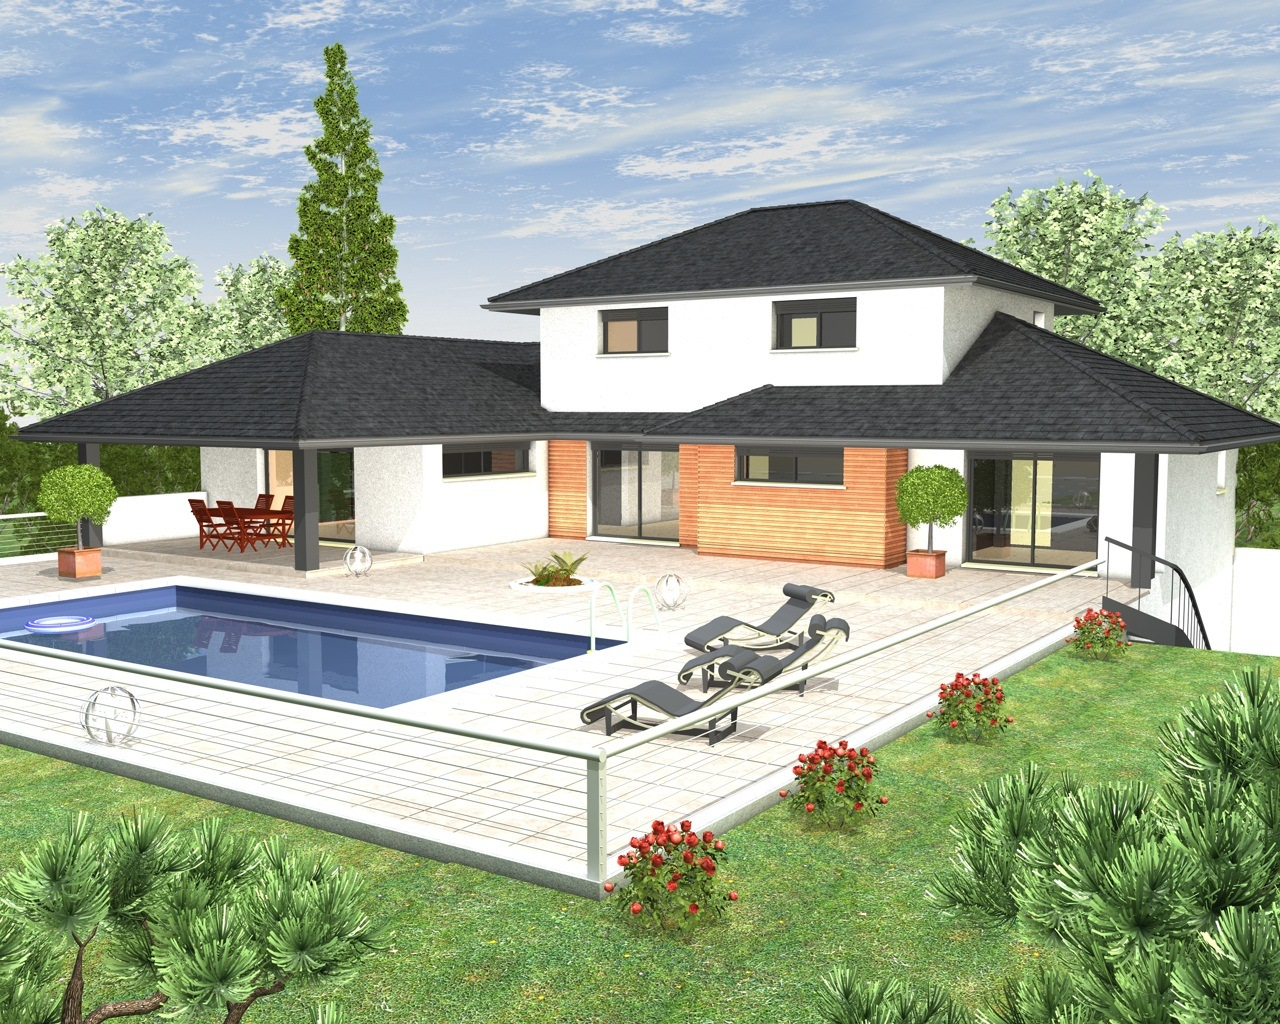 Mod les et plans de maisons mod le tage inspiration for Modele de maison contemporaine de plain pied